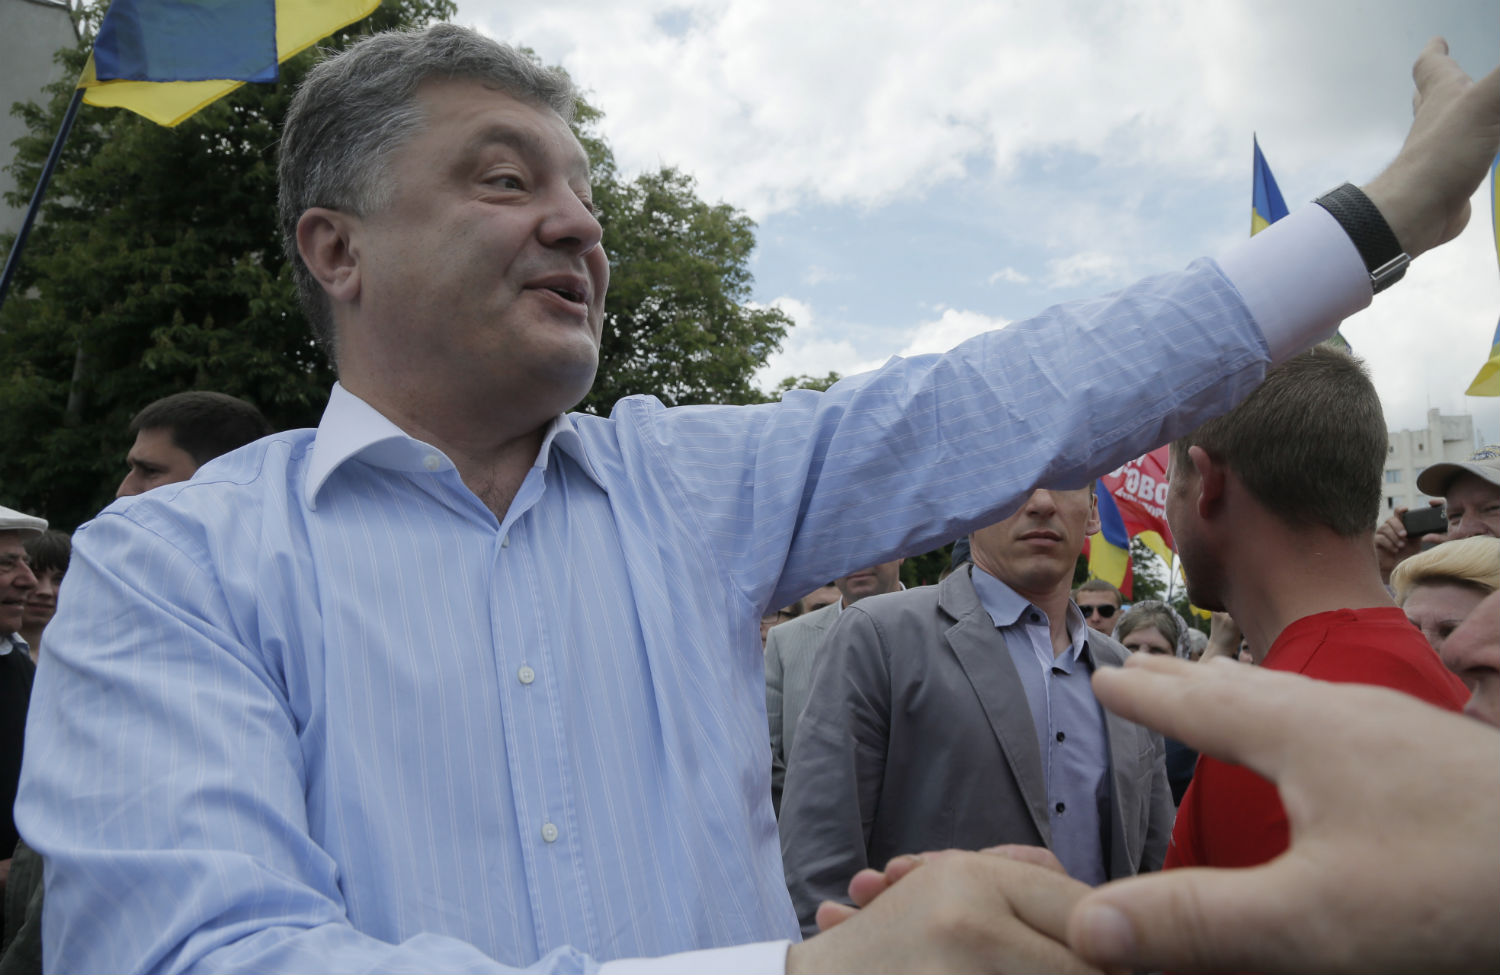 What's-Next-for-Ukraine-Now-That-Putin-Holds-All-the-Cards